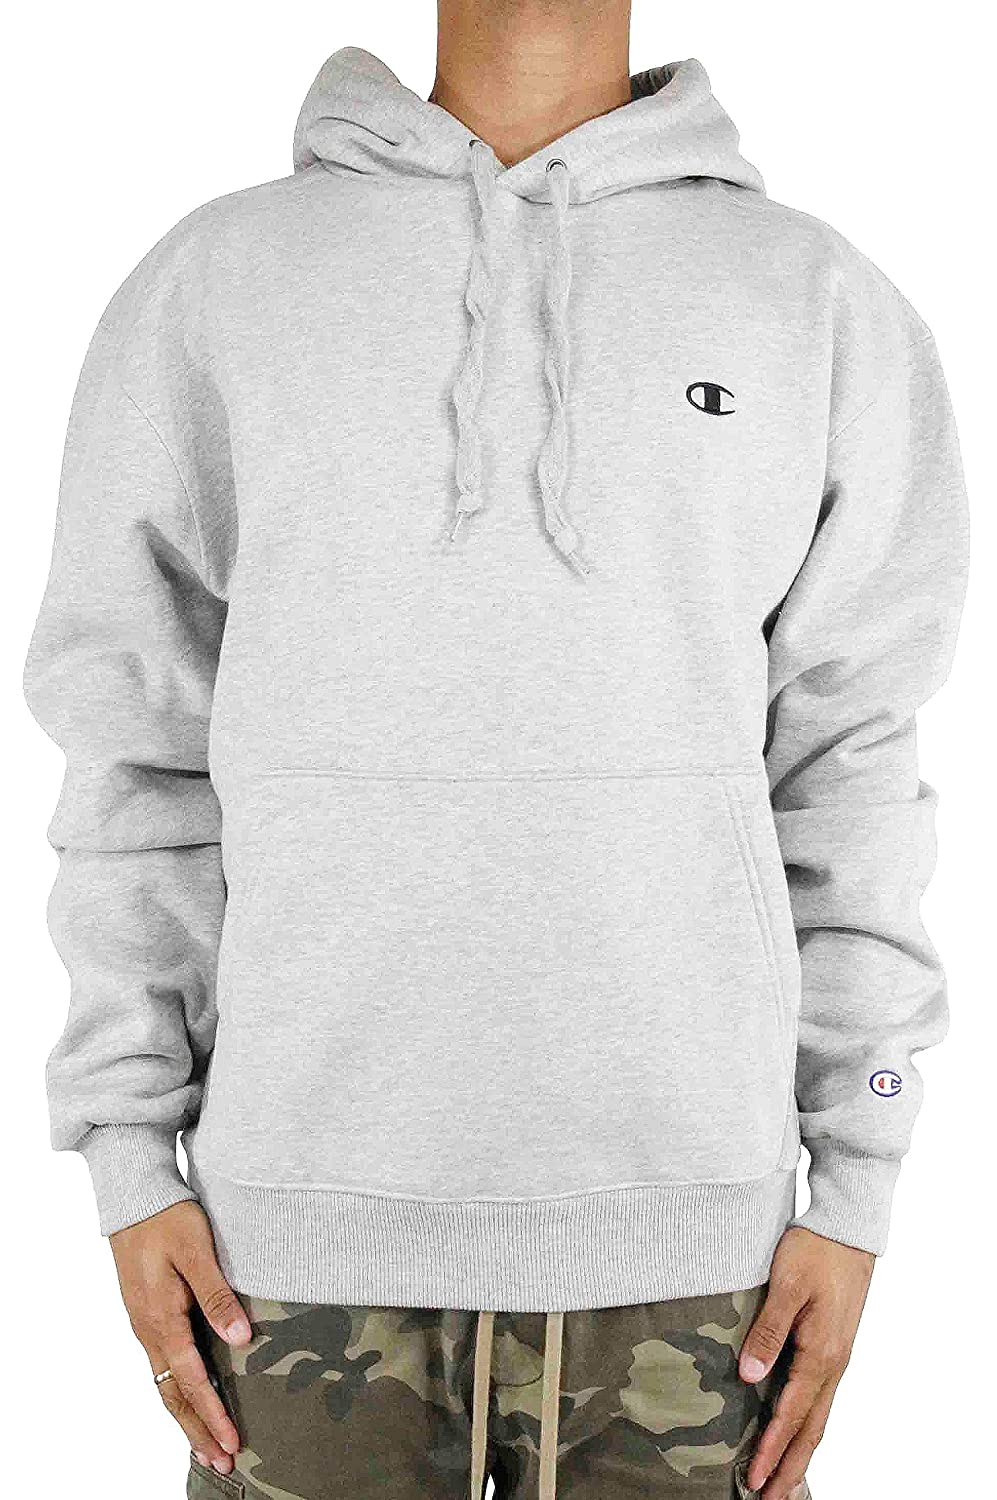 Champion Men's LIFE Heavy Weight Pullover Fleece Hoodie